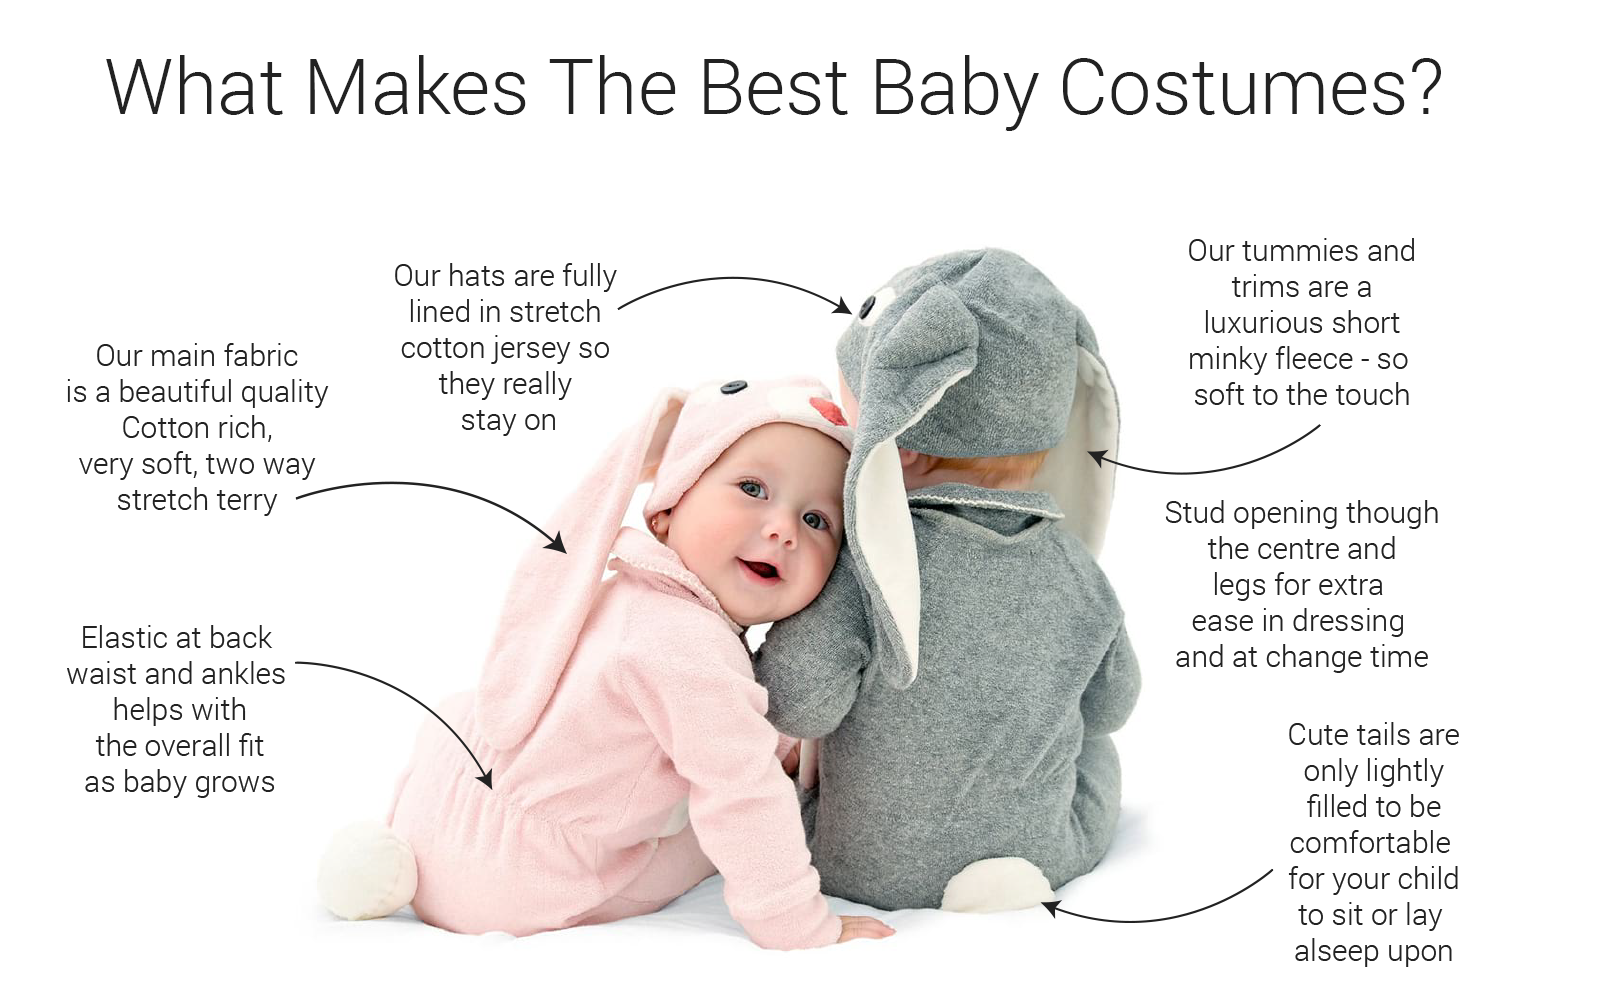 Features Of The Best Baby Costumes